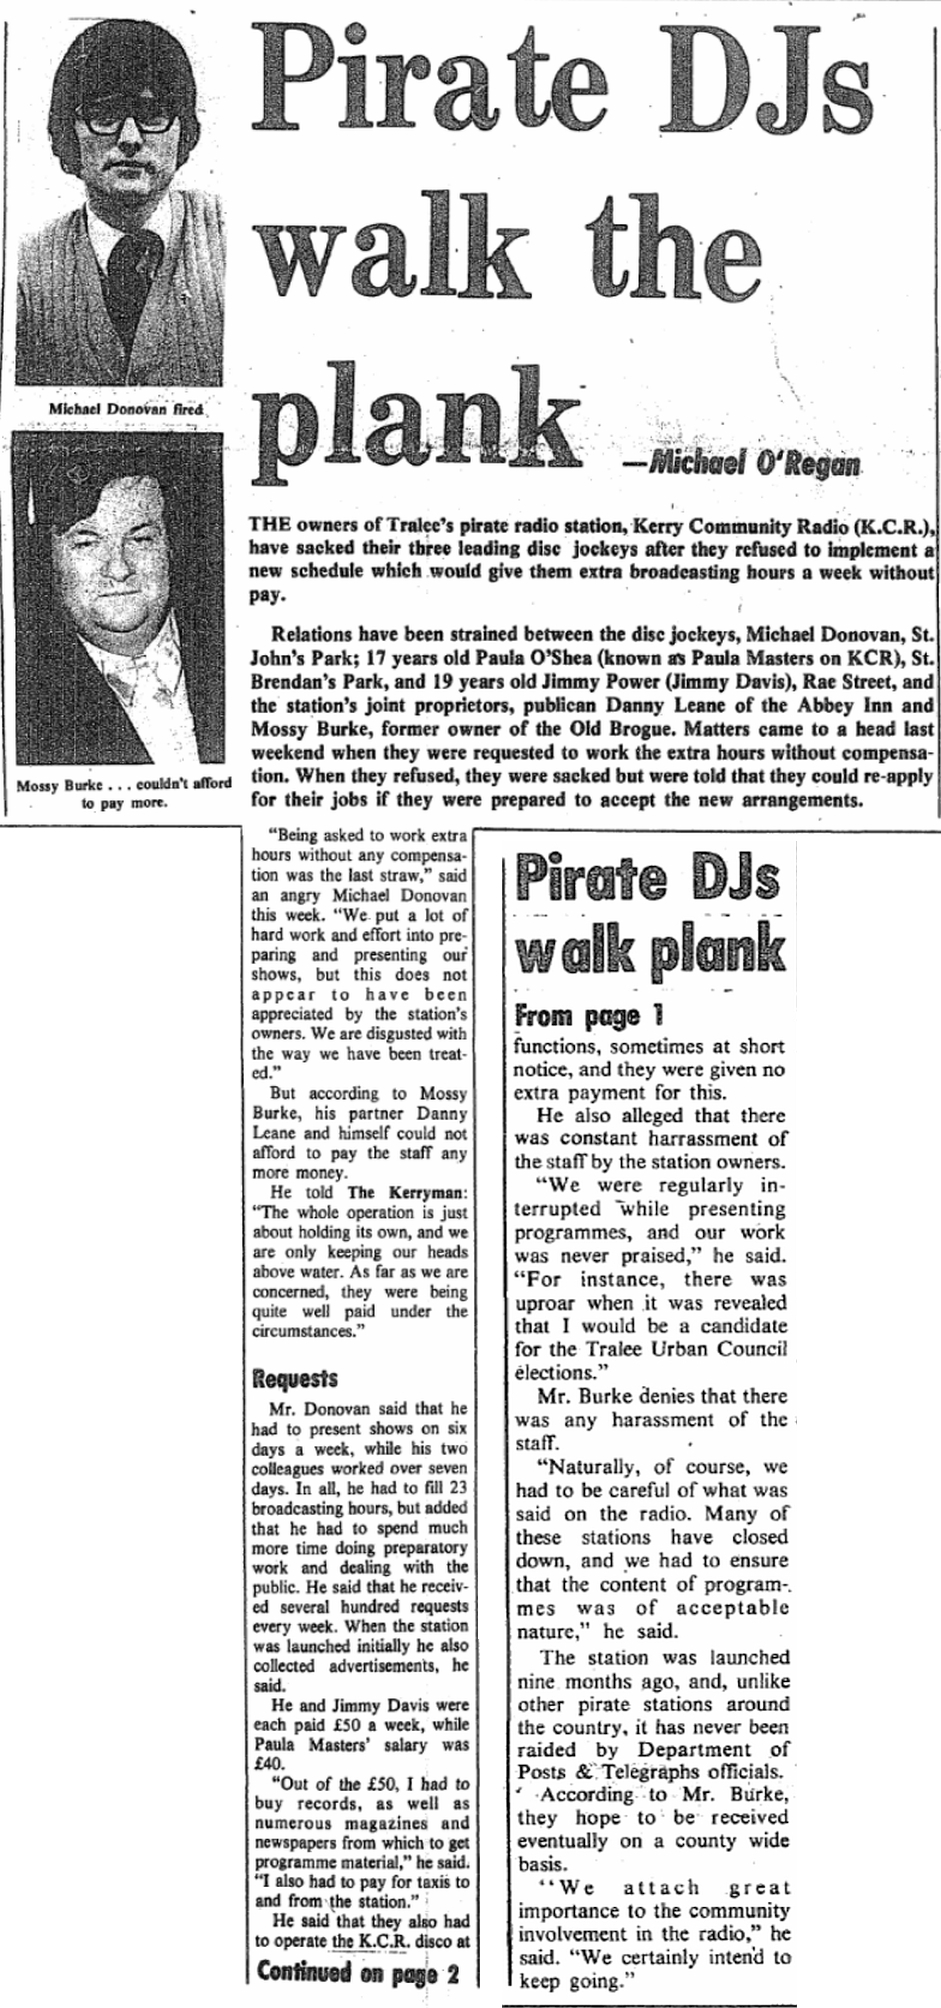 Pirate DJs walk the plank was a headline in The Kerryman dated February 9th 1978